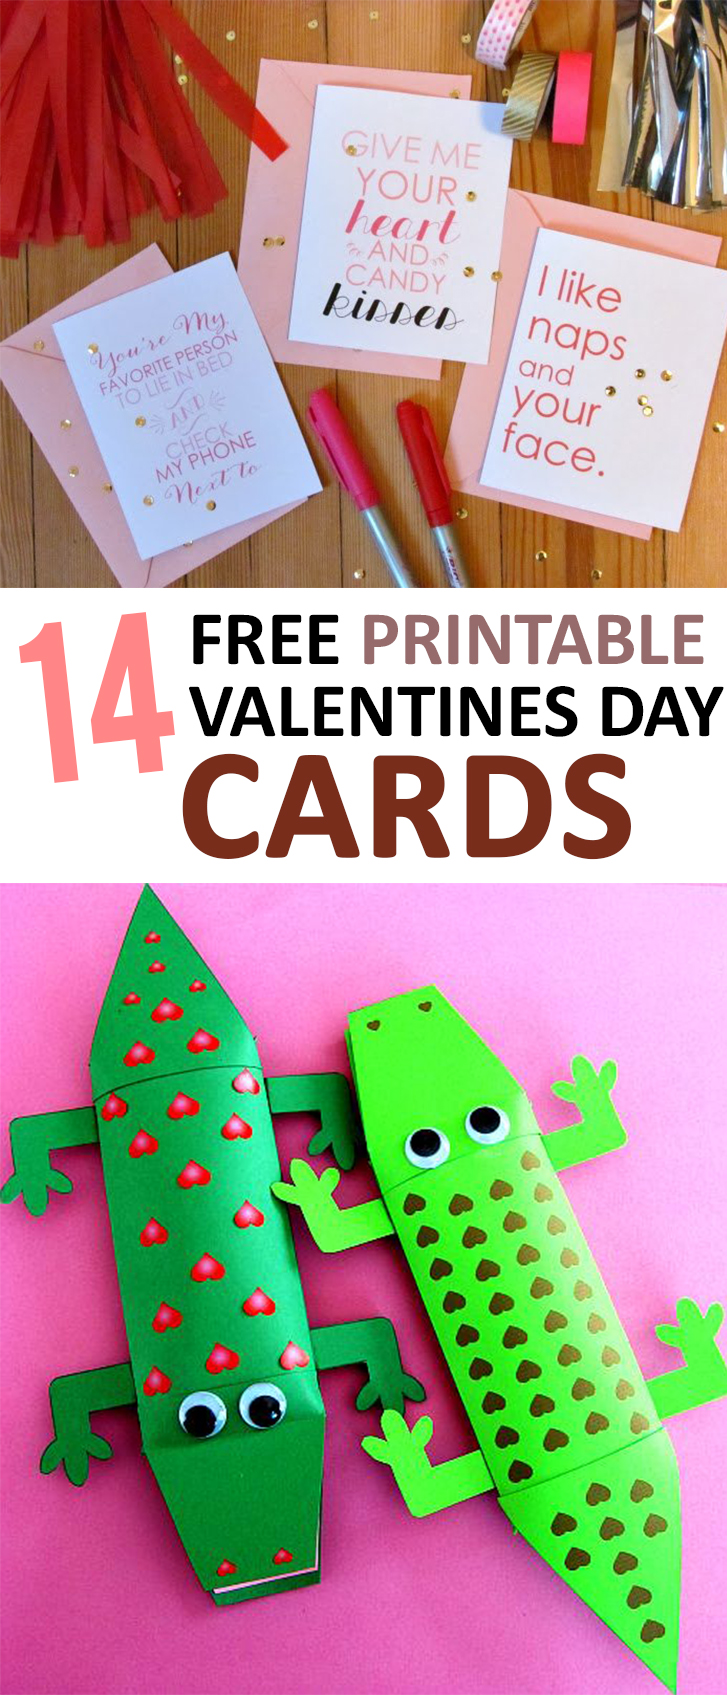 Printable Valentines Day Cards, Valentines Day Card Ideas, Free Valentines Day Ideas, Printable Valentines Day Cards, Free Valentines Day Printables, Valentines Day Classroom Ideas, Classroom Party Ideas, Holiday Treat Ideas